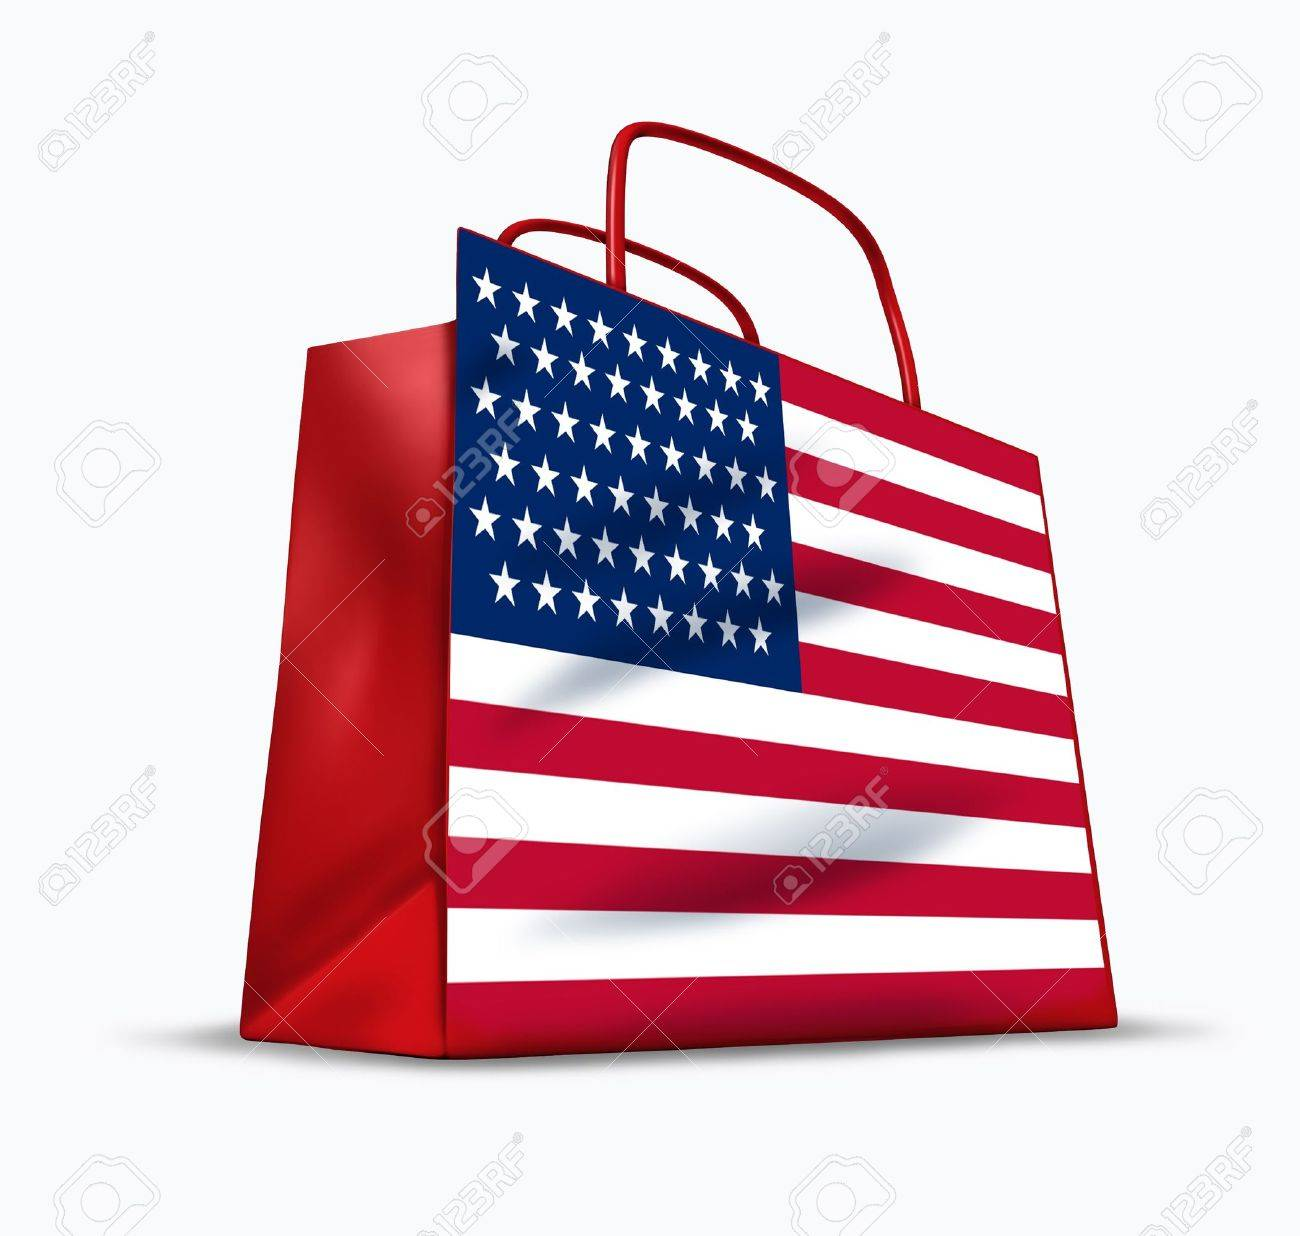 American consumer symbol with a shopping bag  and the U.S. flag. Stock Photo - 11053461